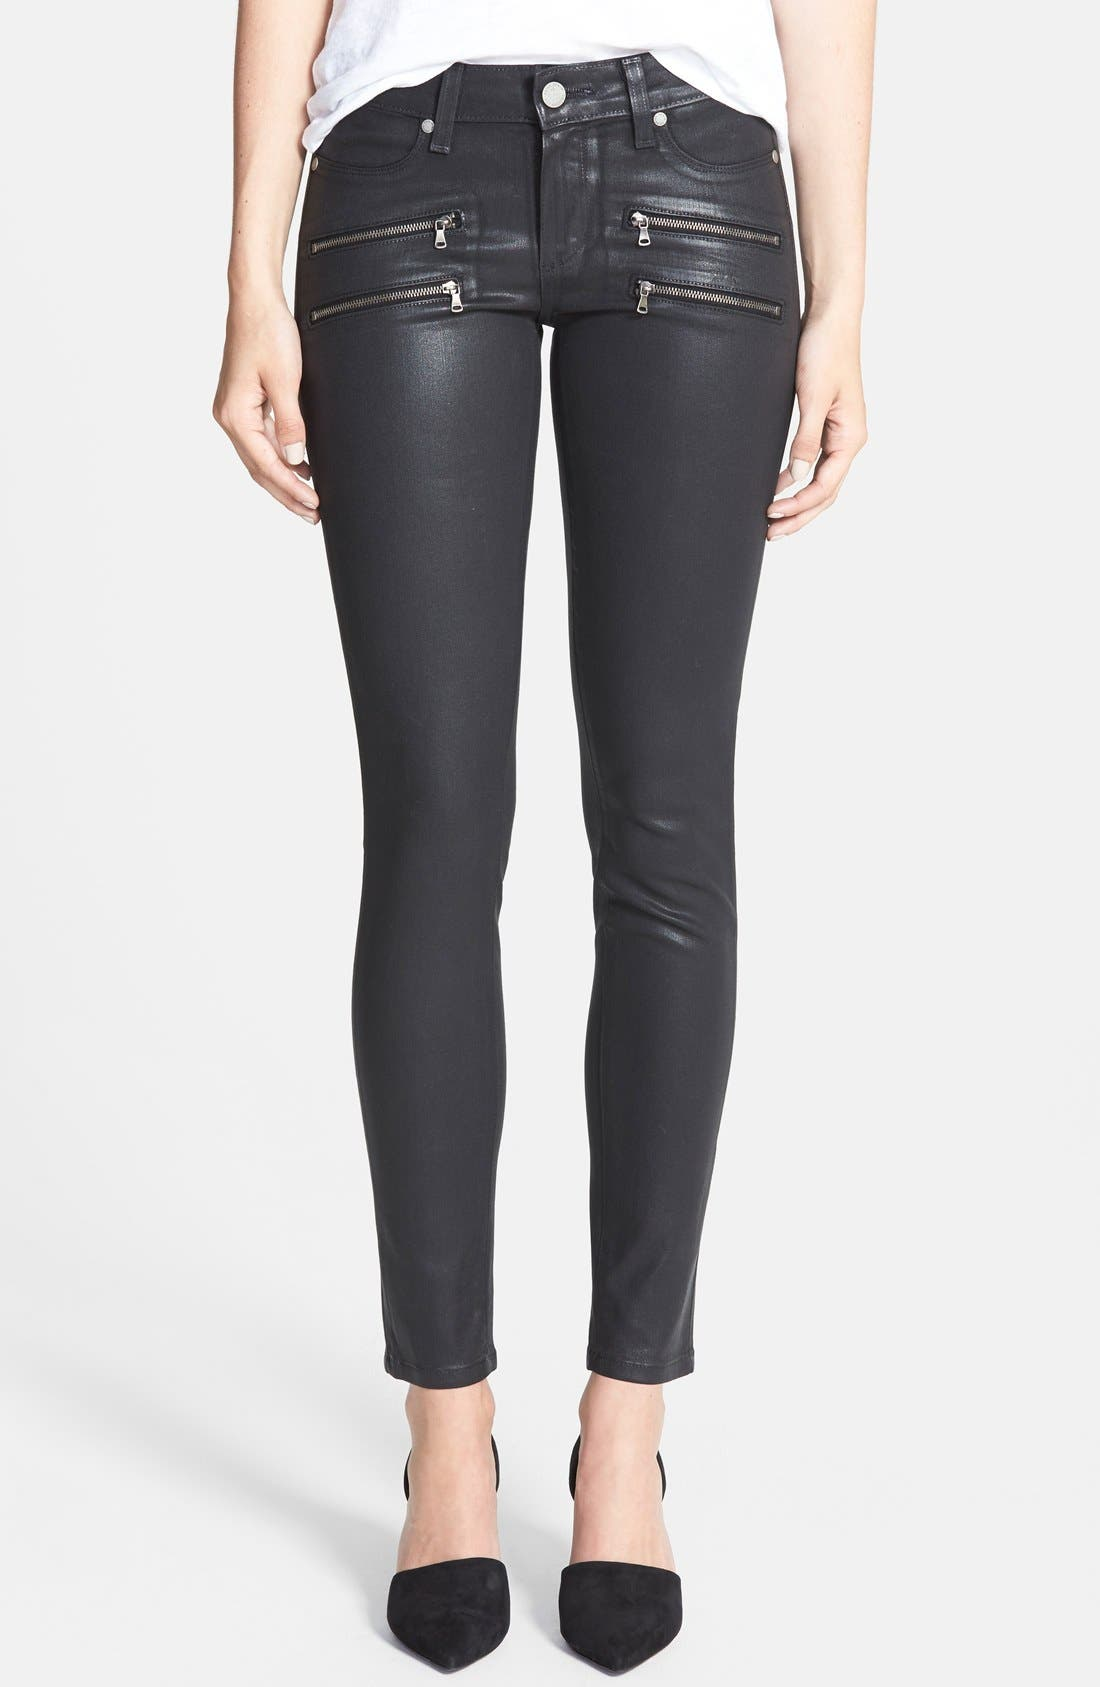 'Edgemont' Coated Ultra Skinny Jeans,                             Main thumbnail 1, color,                             001